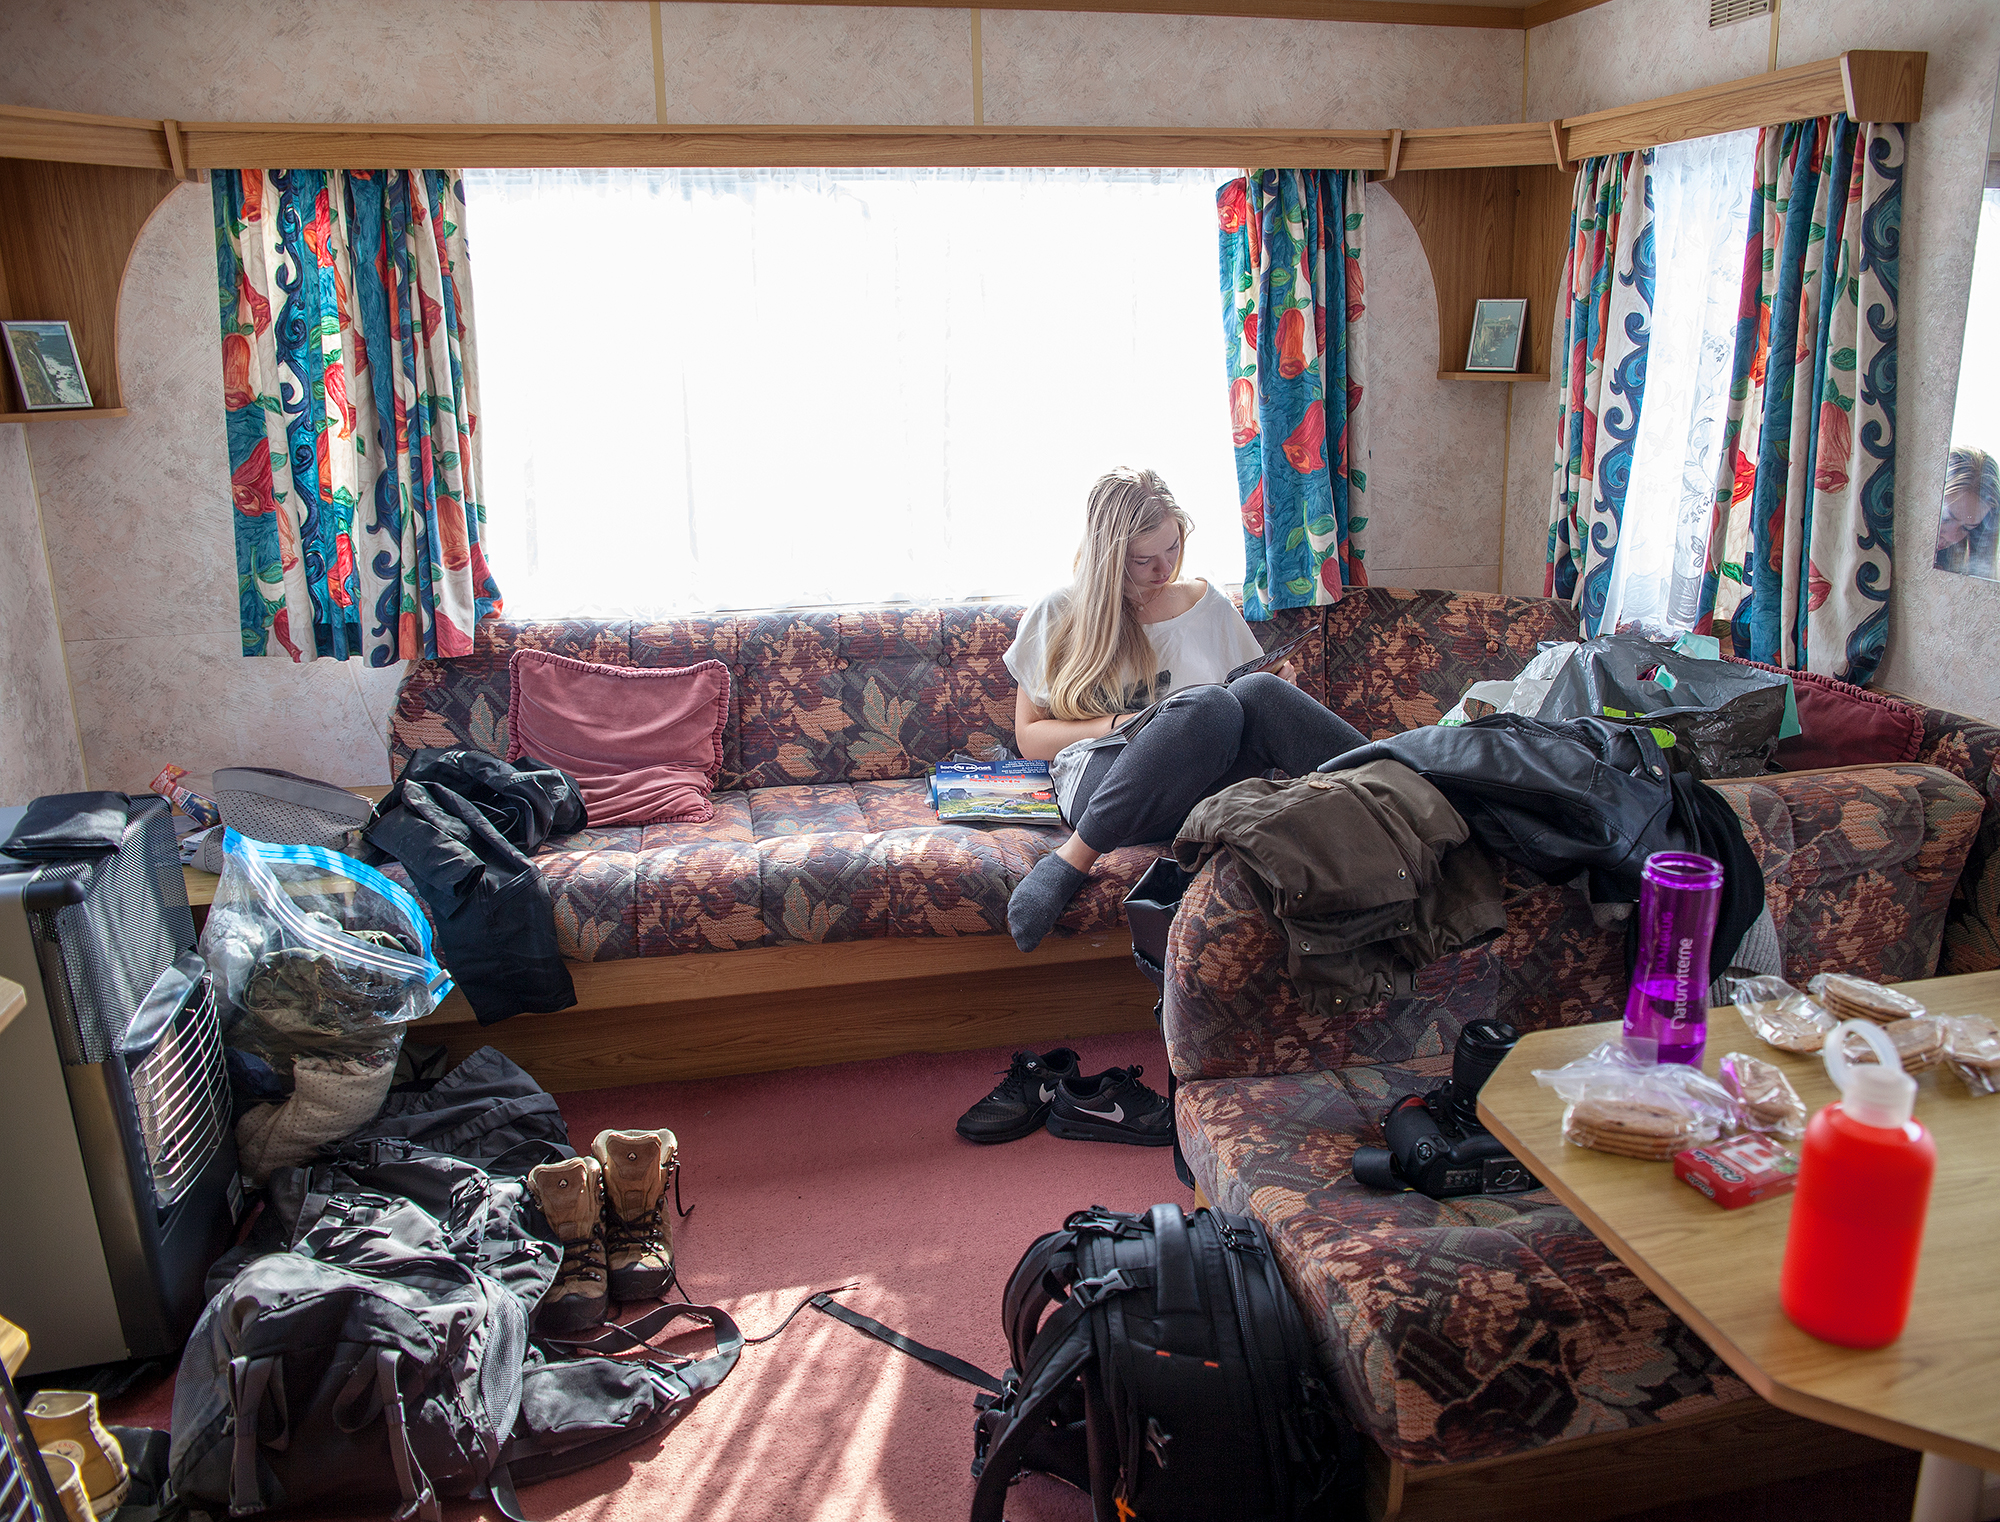 Our utterly glamorous caravan home. Photo by Siv